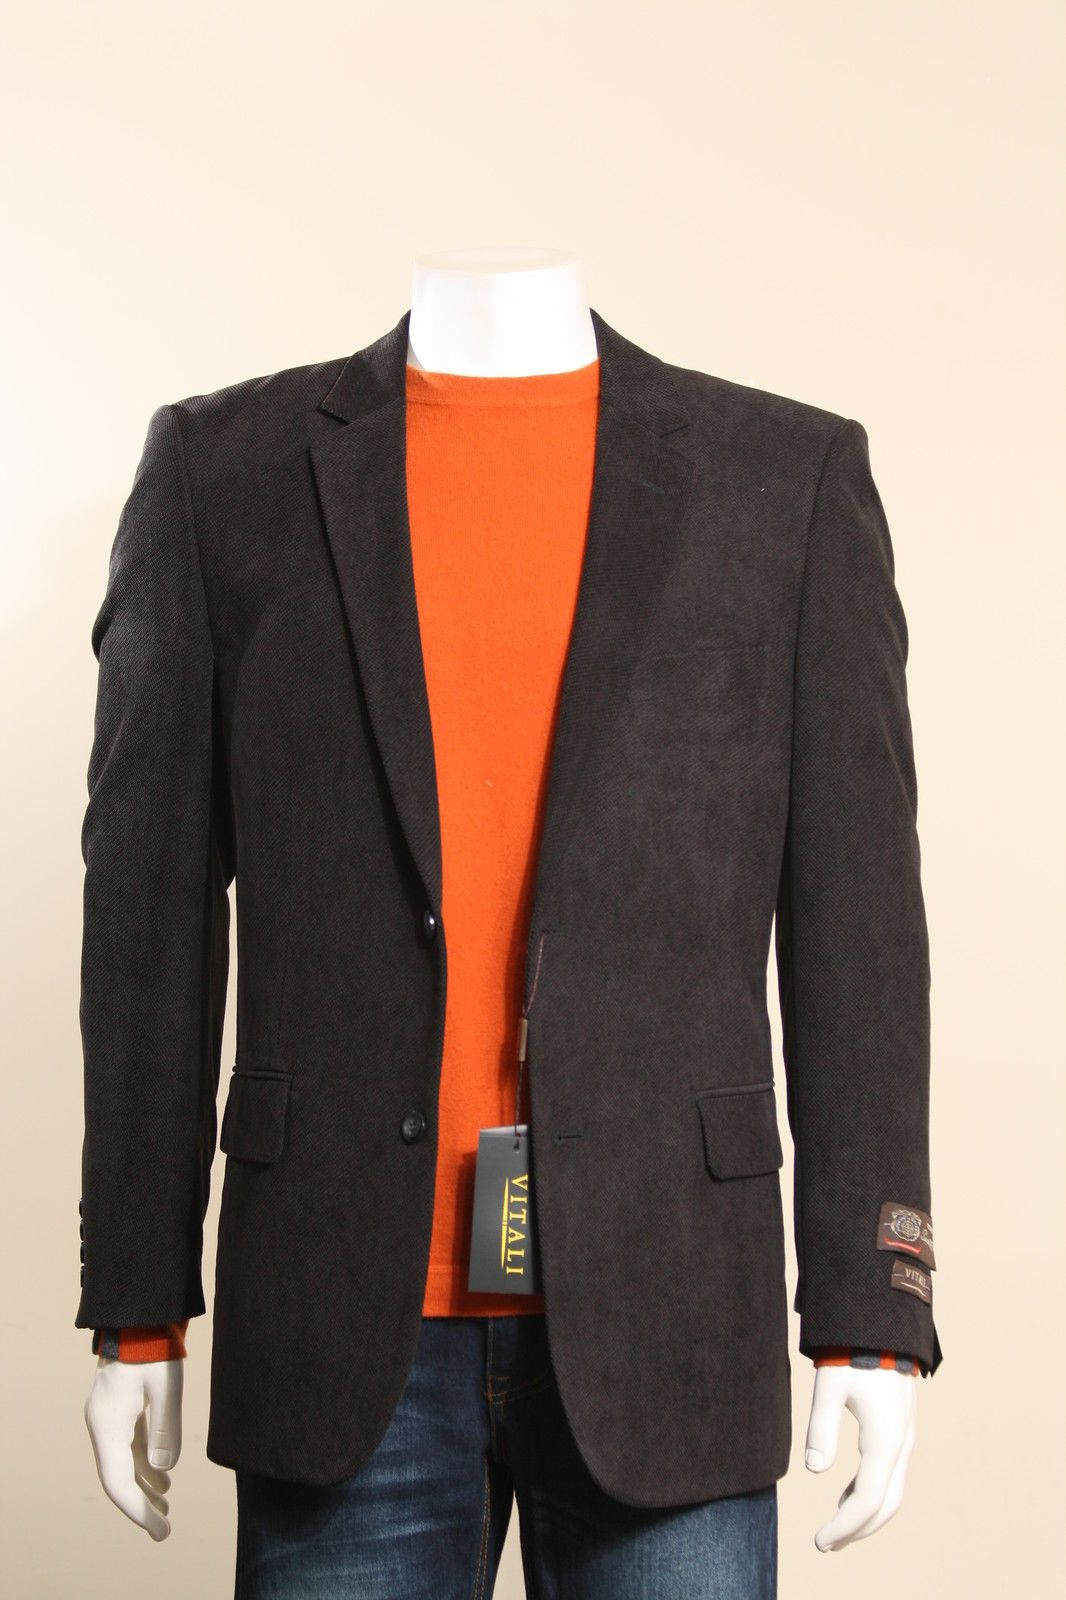 casual jeans and blazer style NewMens2ButtonBlack